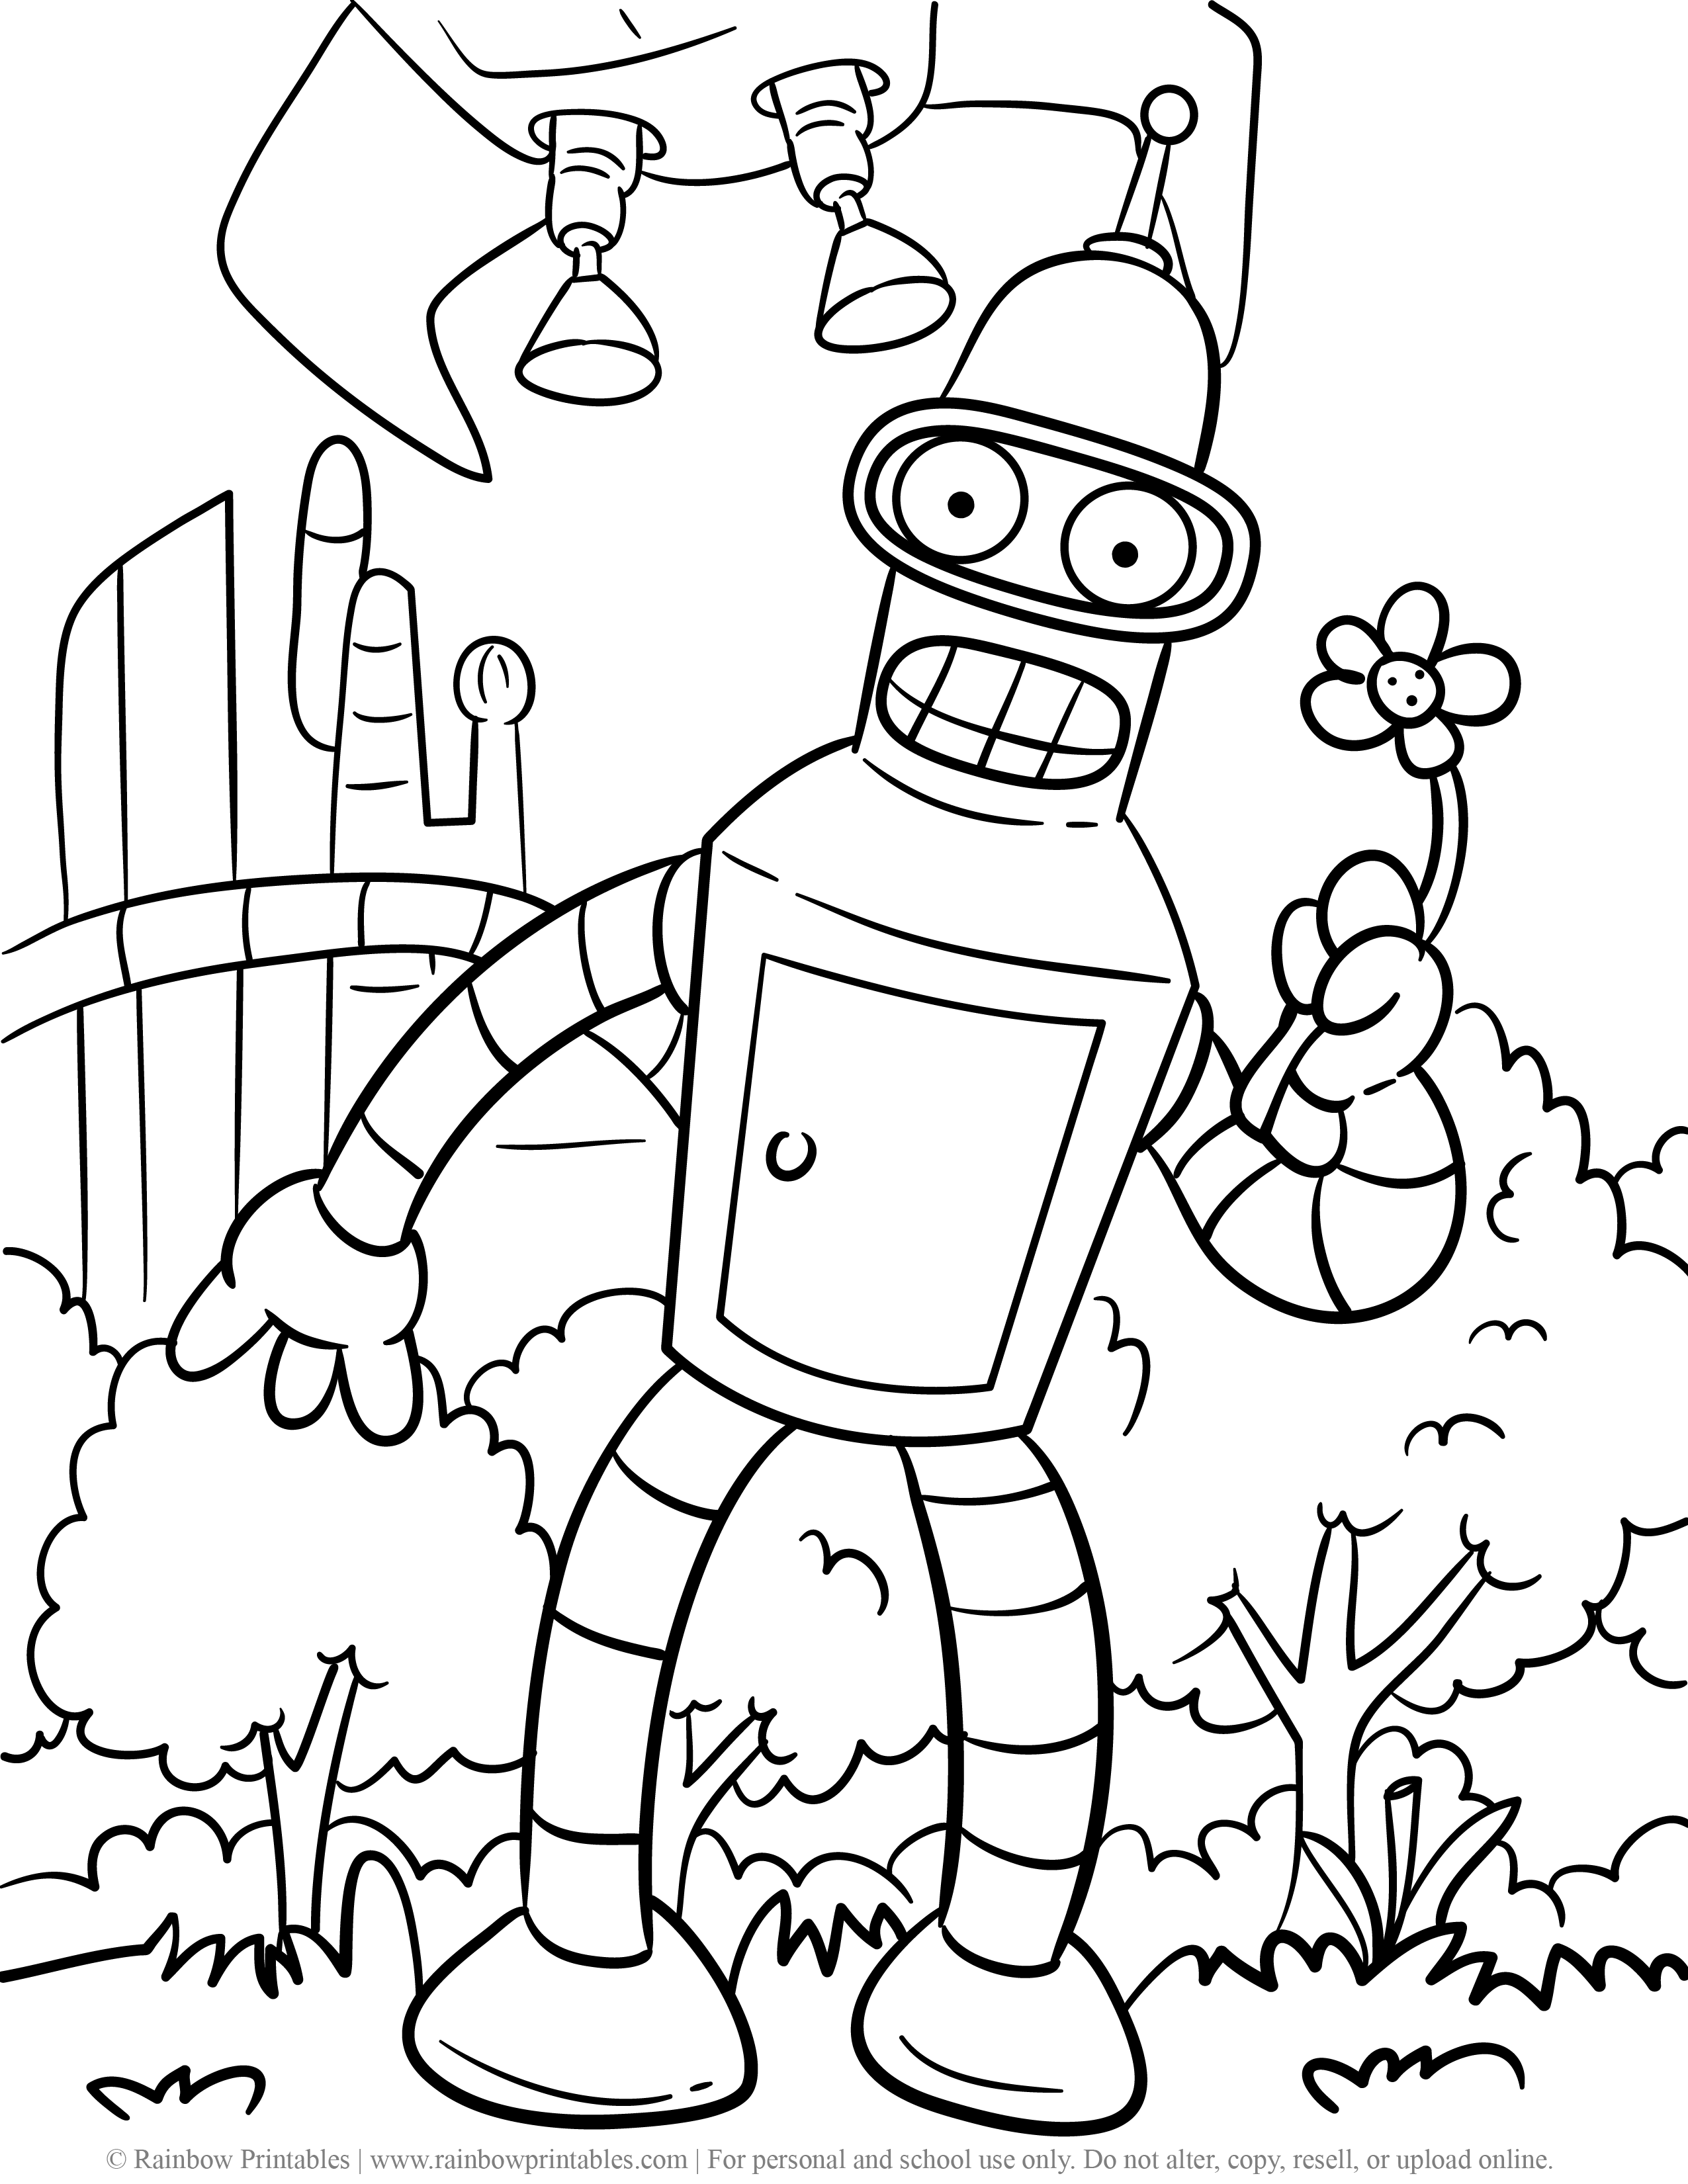 BENDER Rodriguez Futurama With Flower Funny Robot Coloring Page Fanart Matt Groening Characters